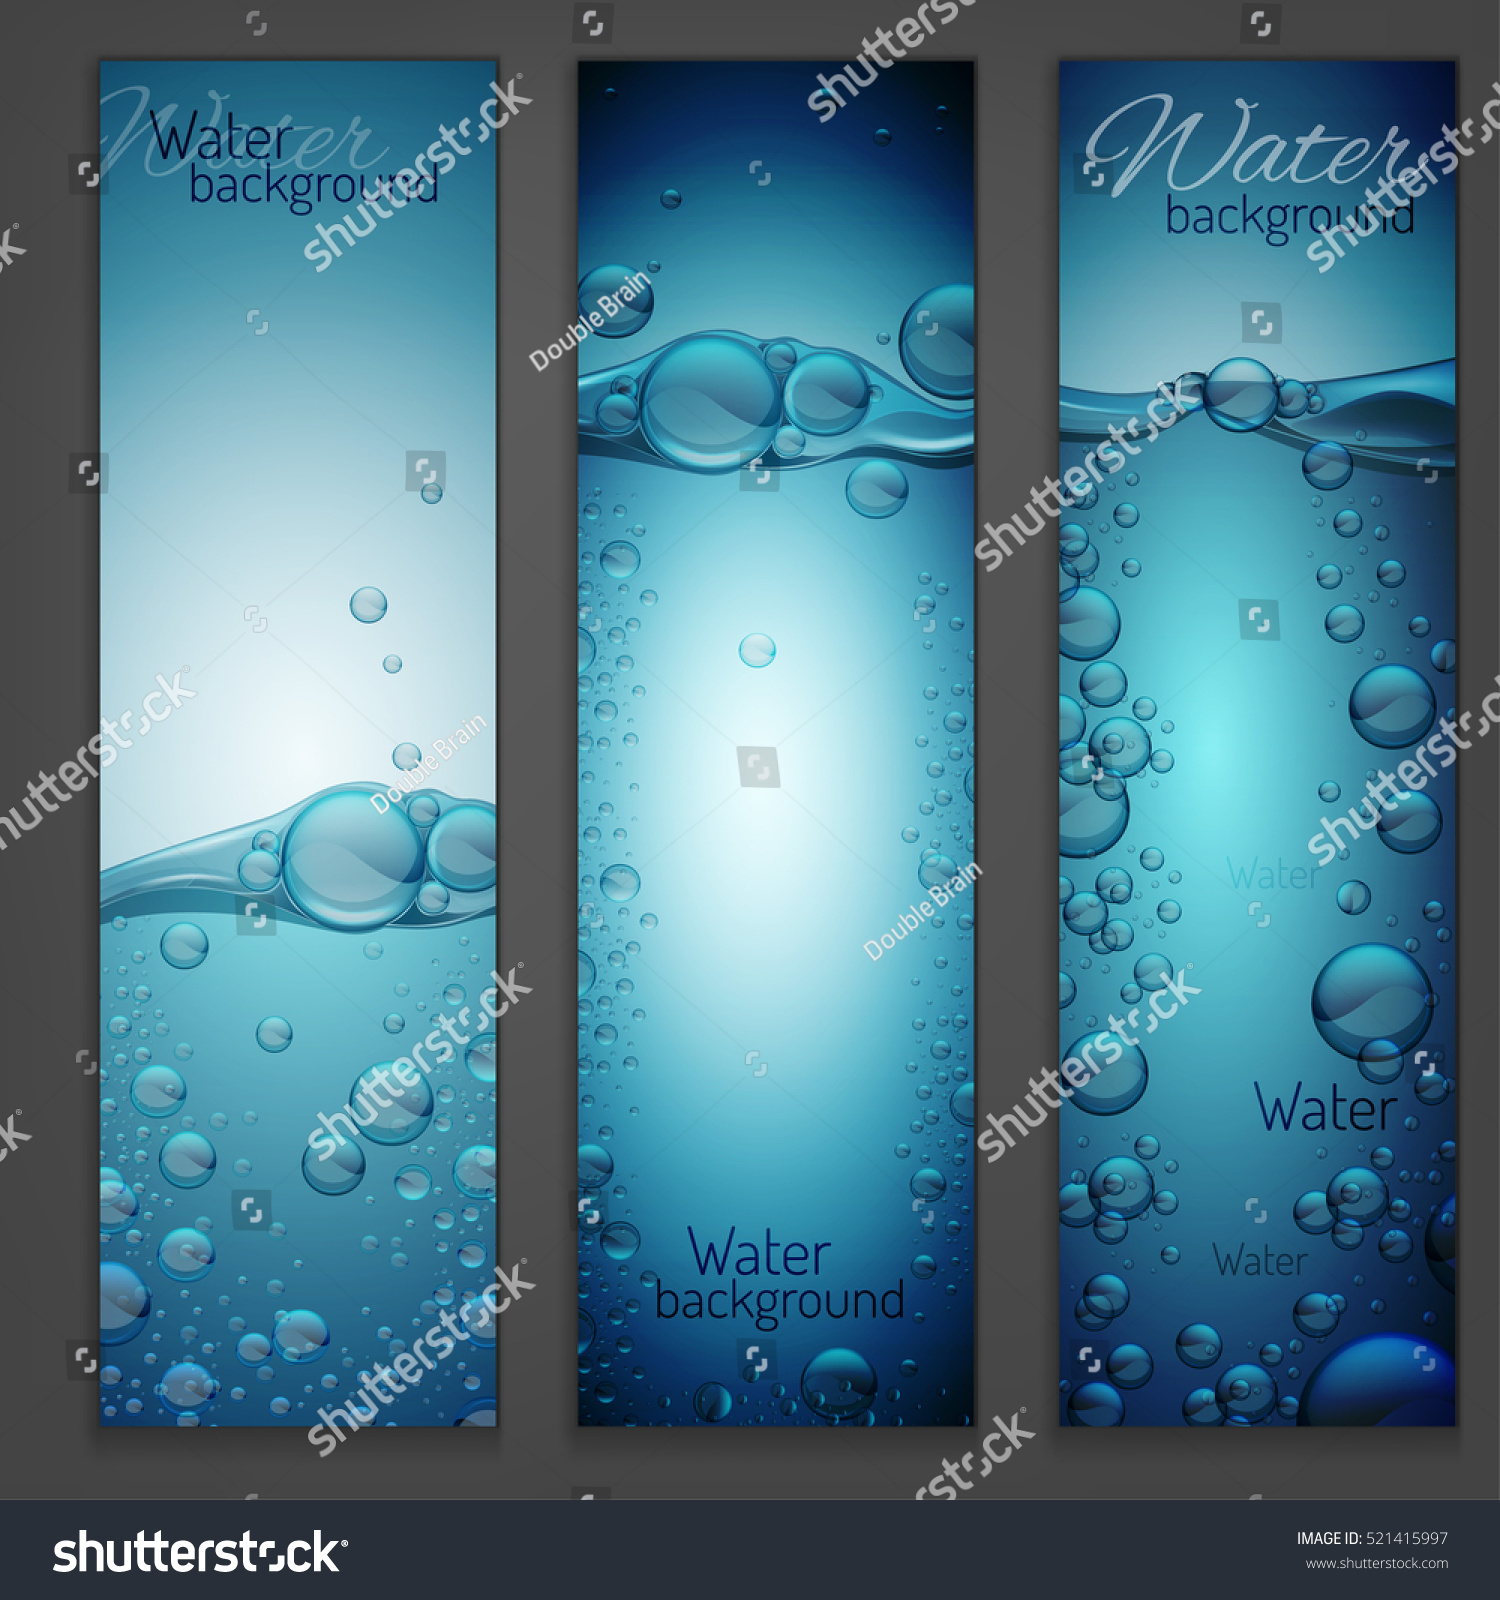 Transparent Water Wave Image Bubbles Vector Stock Vector 521415997 ...